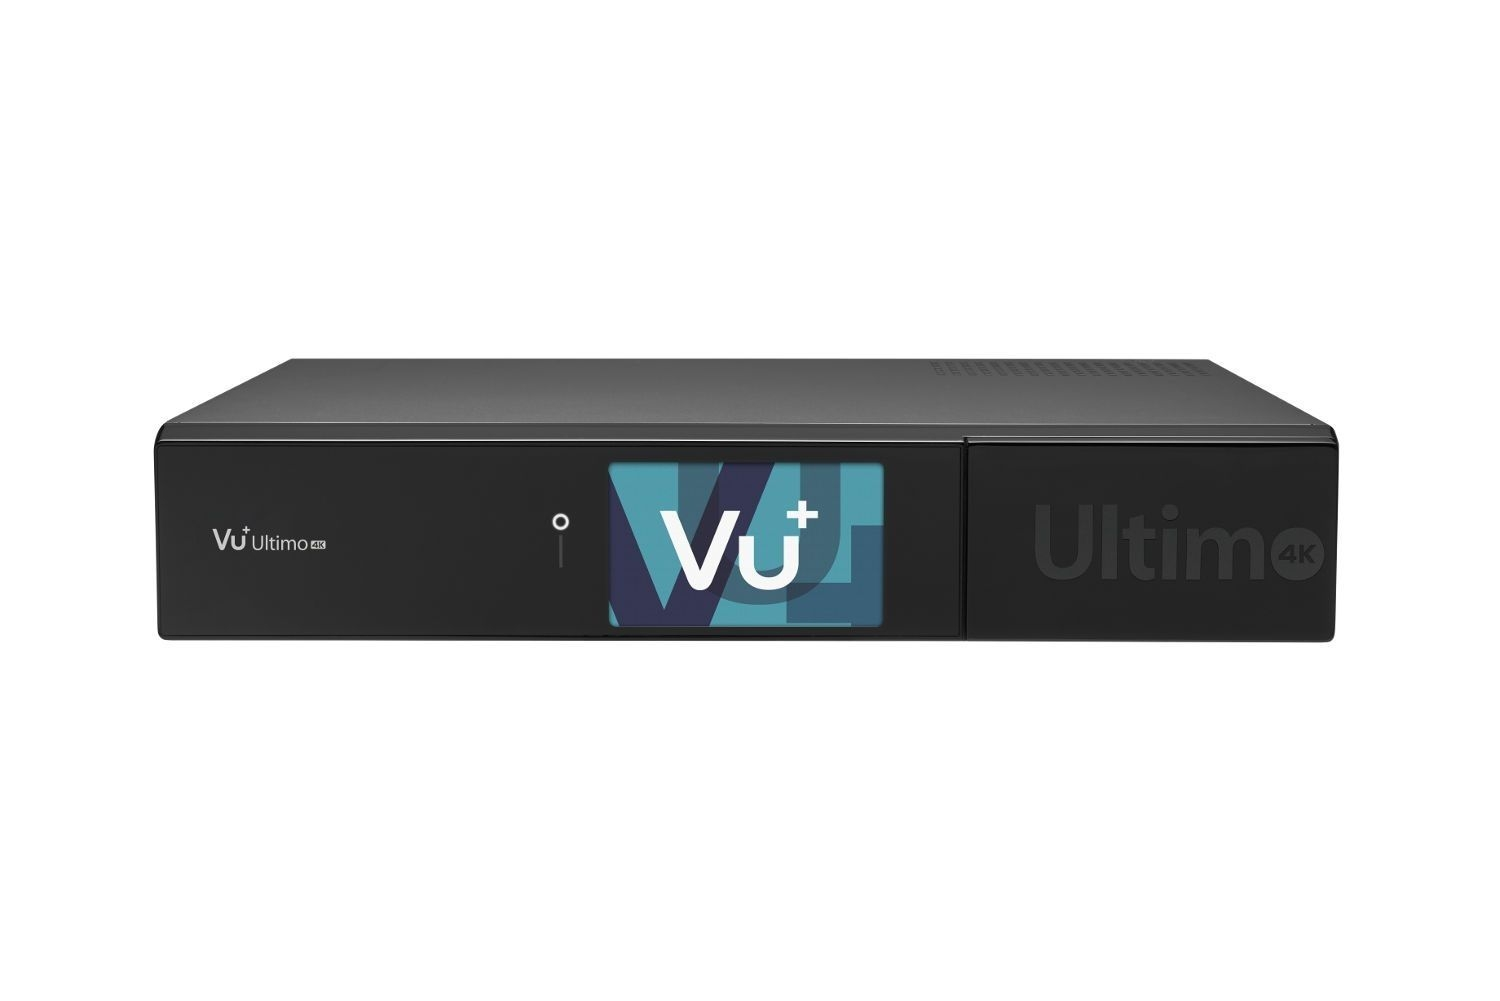 VU+ Ultimo 4K 2x DVB-C FBC / 1x DVB-C/T2 Dual Tuner 2 TB HDD Linux Receiver UHD 2160p